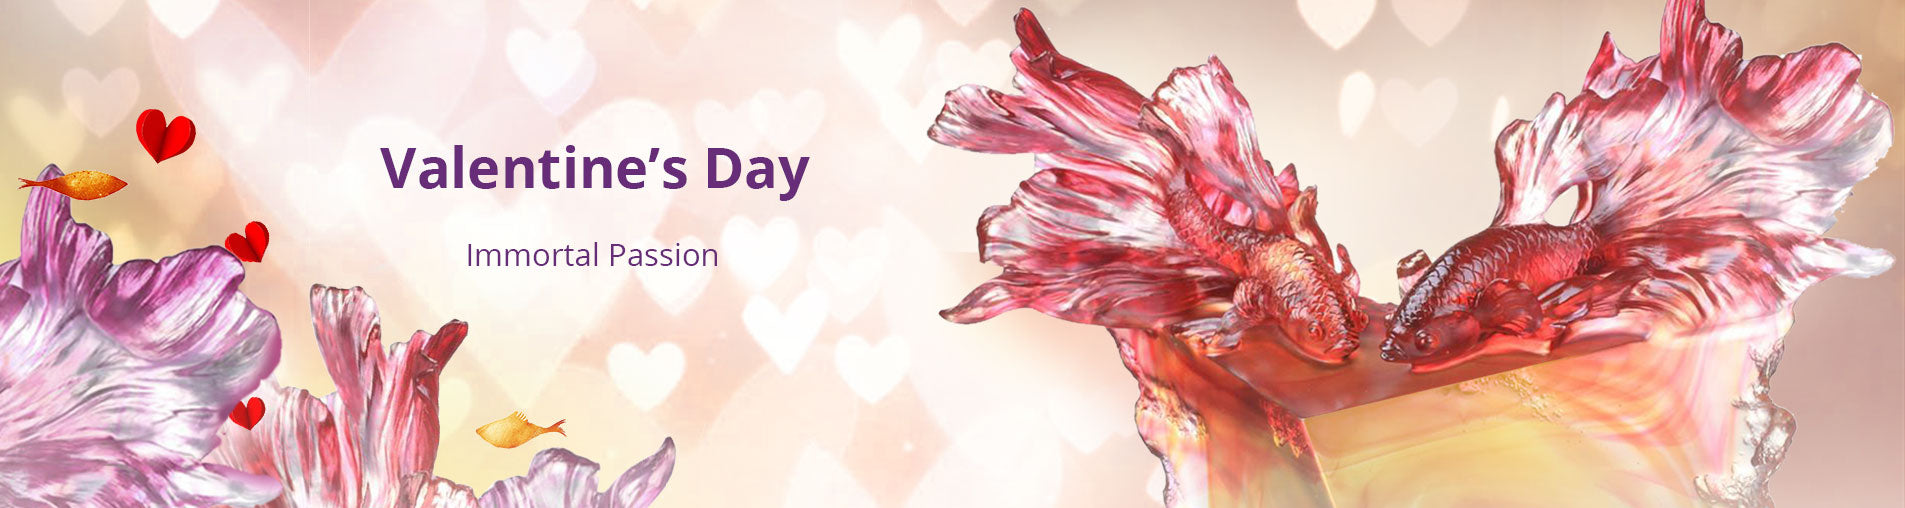 Valentines Day Chinese Crystal Art